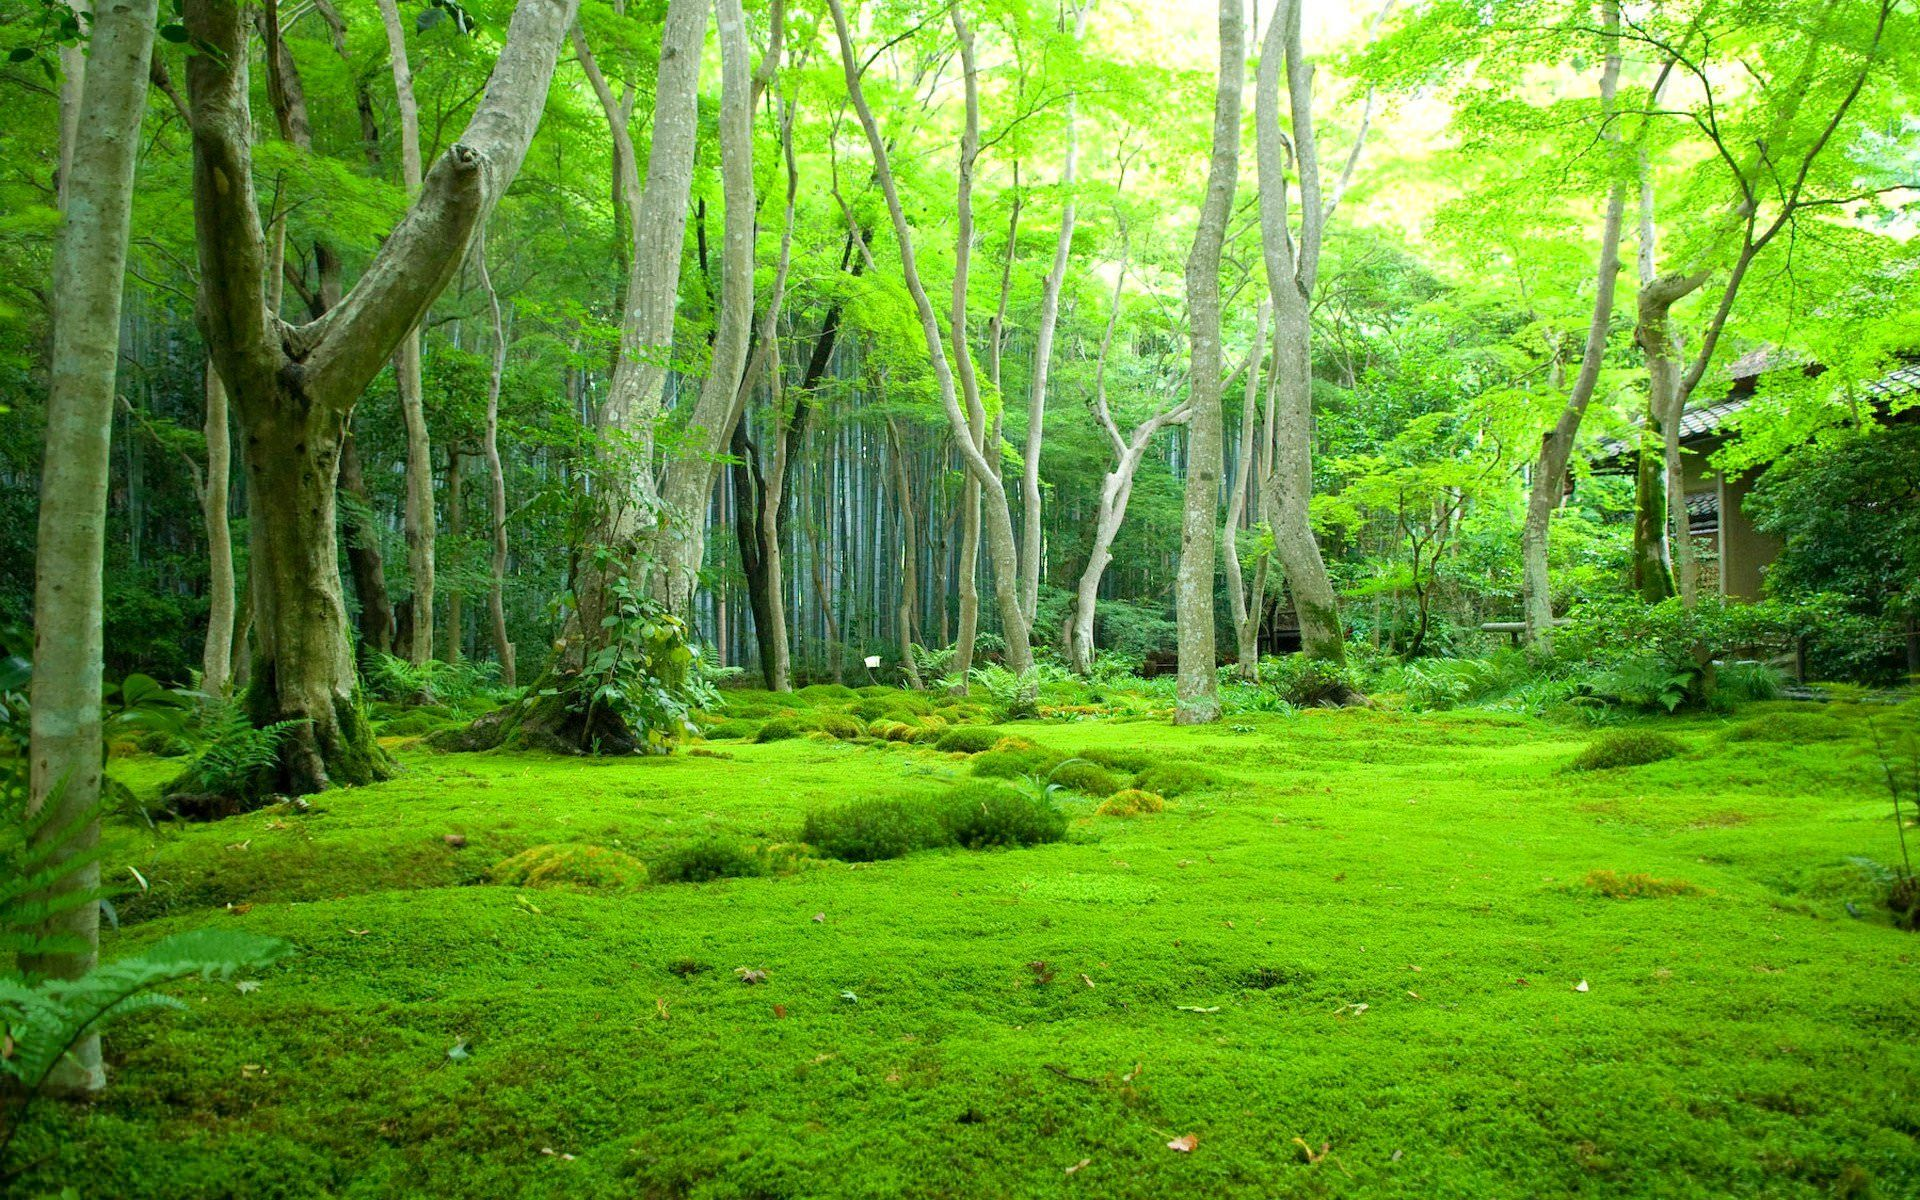 A Beautiful Village In A Natural Forest 1920x1200 Moss Lawn Jungle Wallpaper Forest Wallpaper